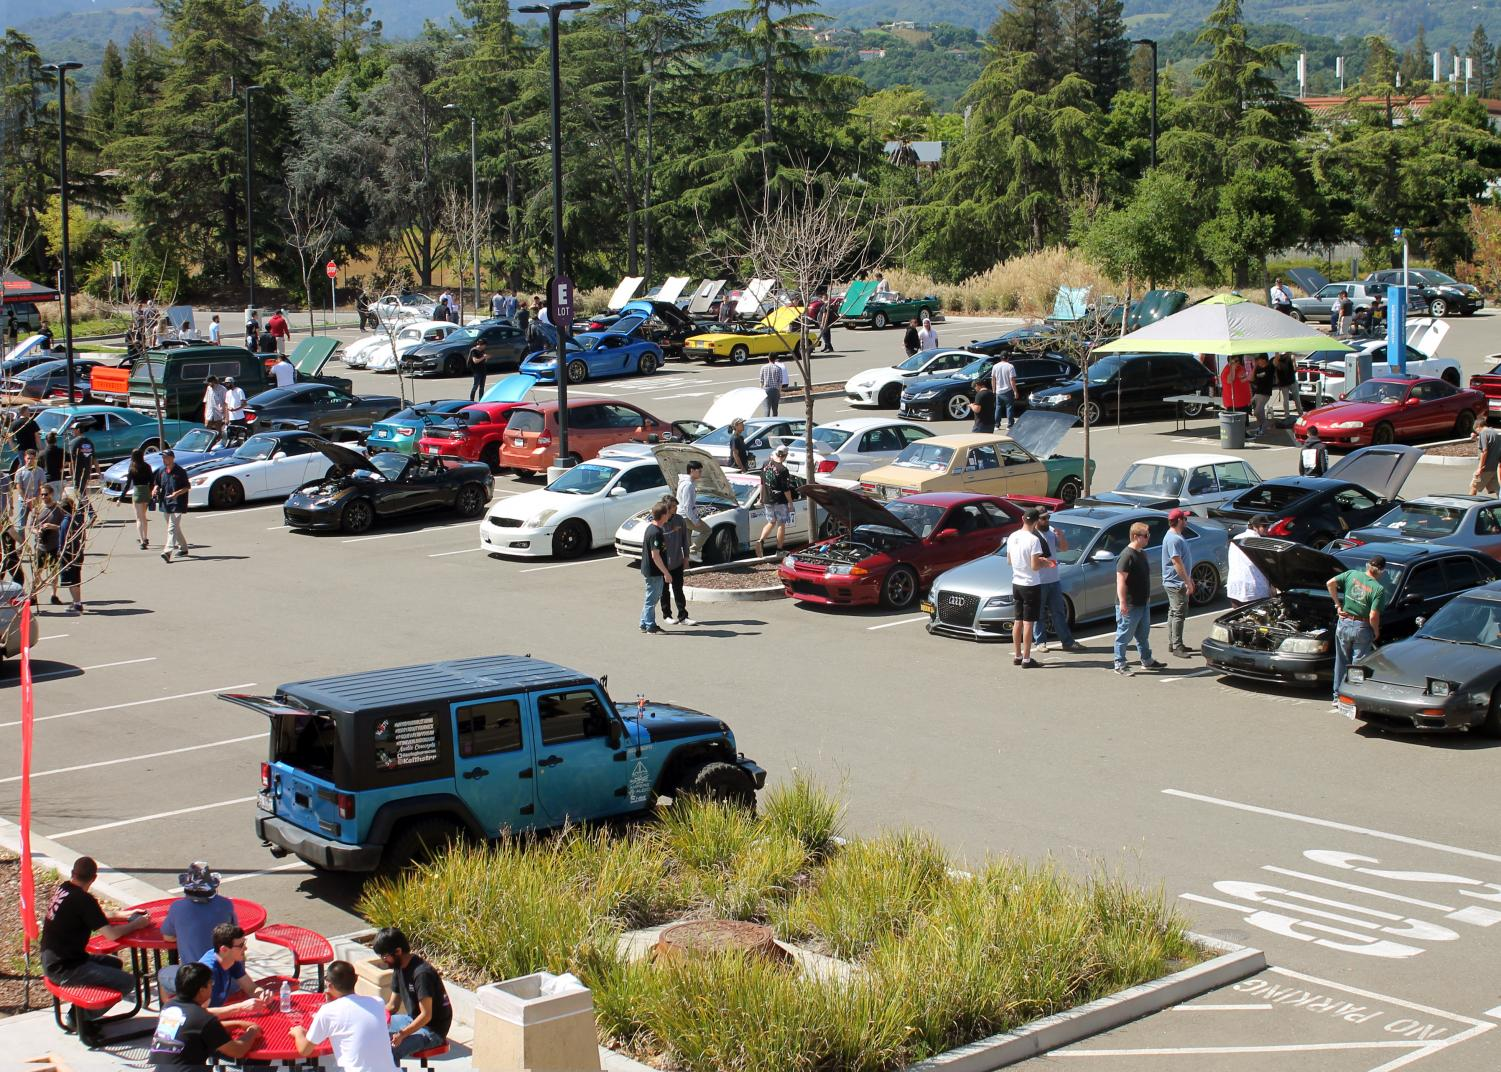 On+Saturday%2C+April+13th%2C+the+Automotive+Technology+Club+for+De+Anza+College%E2%80%99s+Automotive+department+was+hosting+their+6th+Annual+Car+Show+in+Lot+E+at+the+Campus.